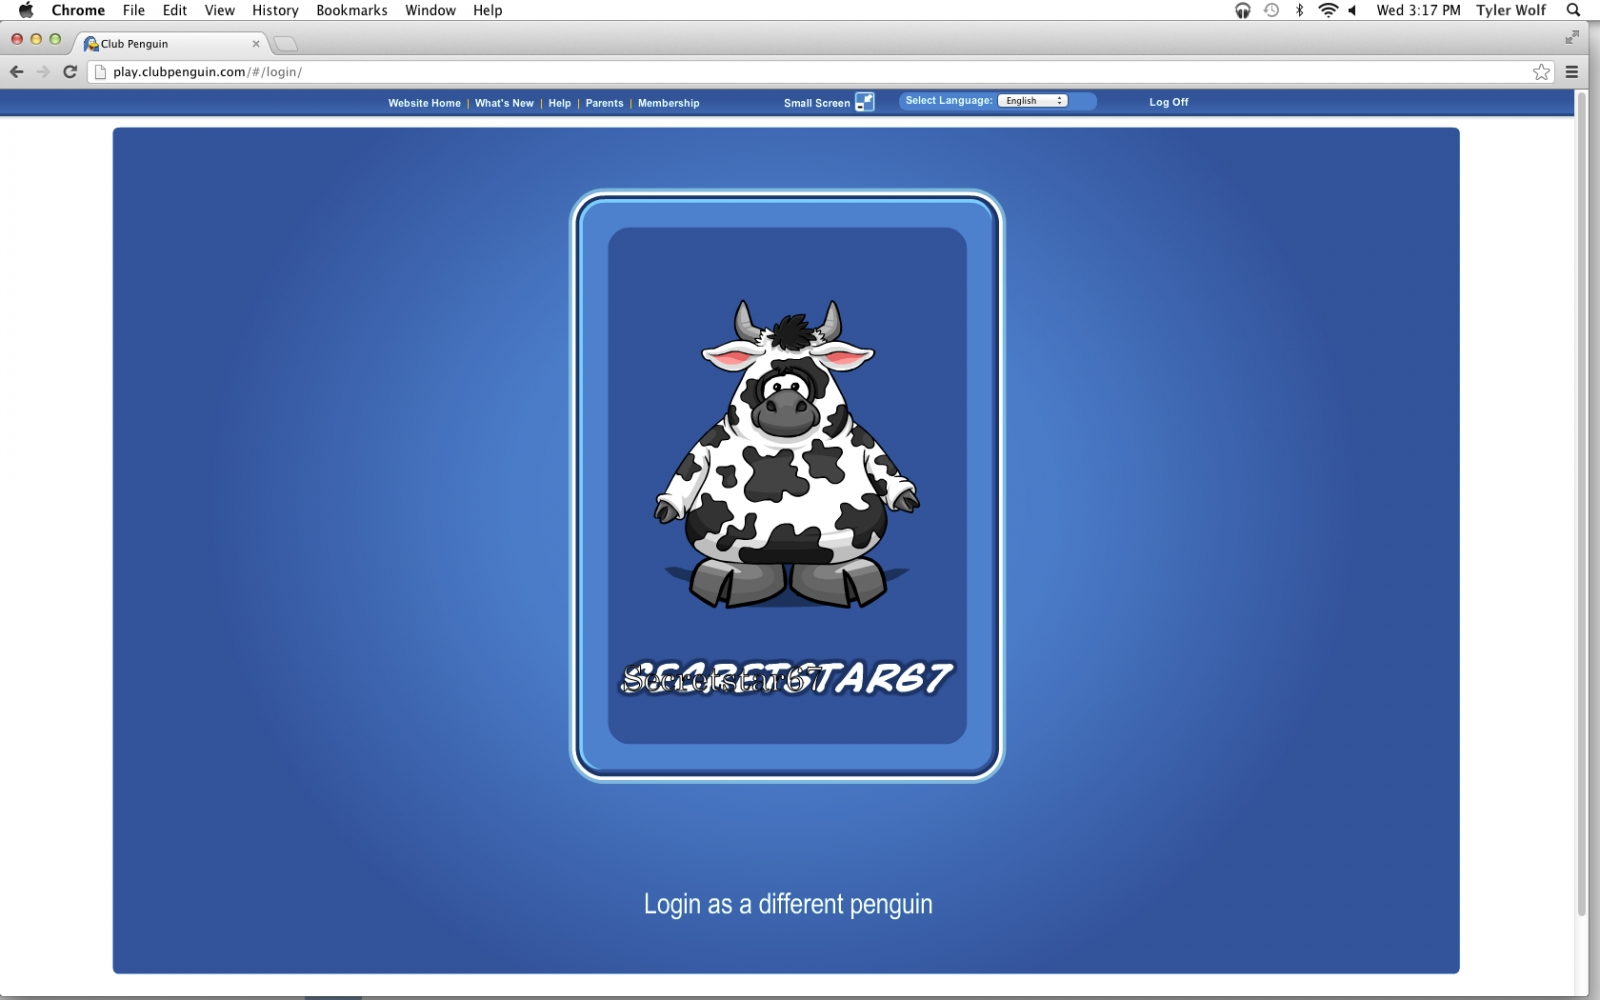 Pics club penguin carcat s clubpenguin page 3 - Secretstar67 Club Penguin Search Custom Homepage Skins